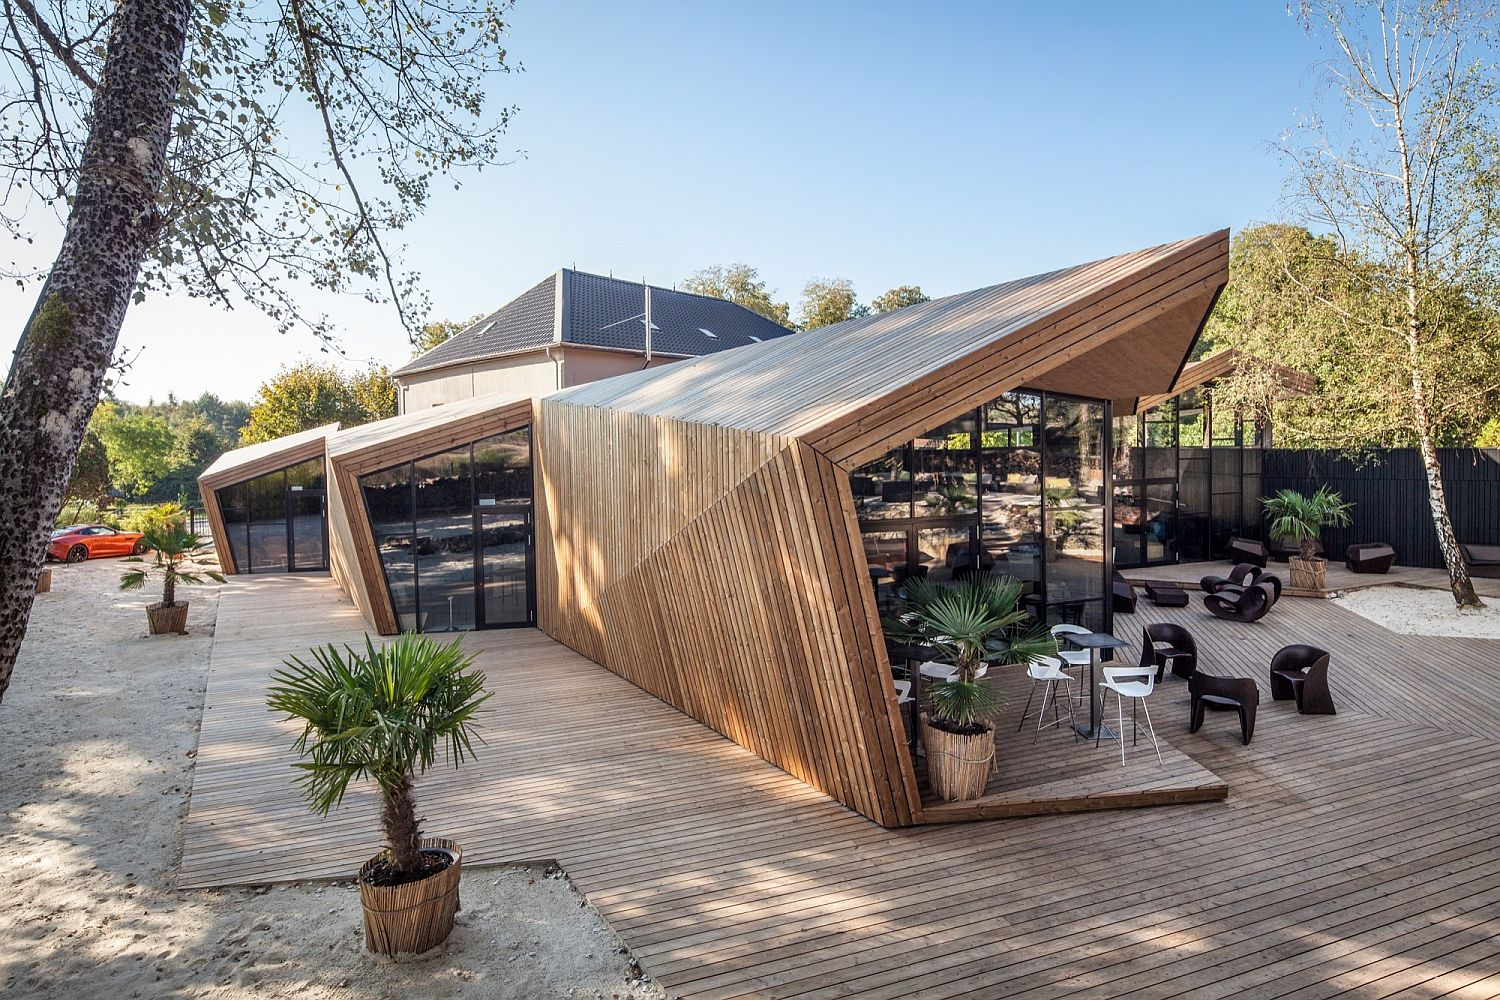 Sculptural style of Luxembourg restaurant inspired by art of origami